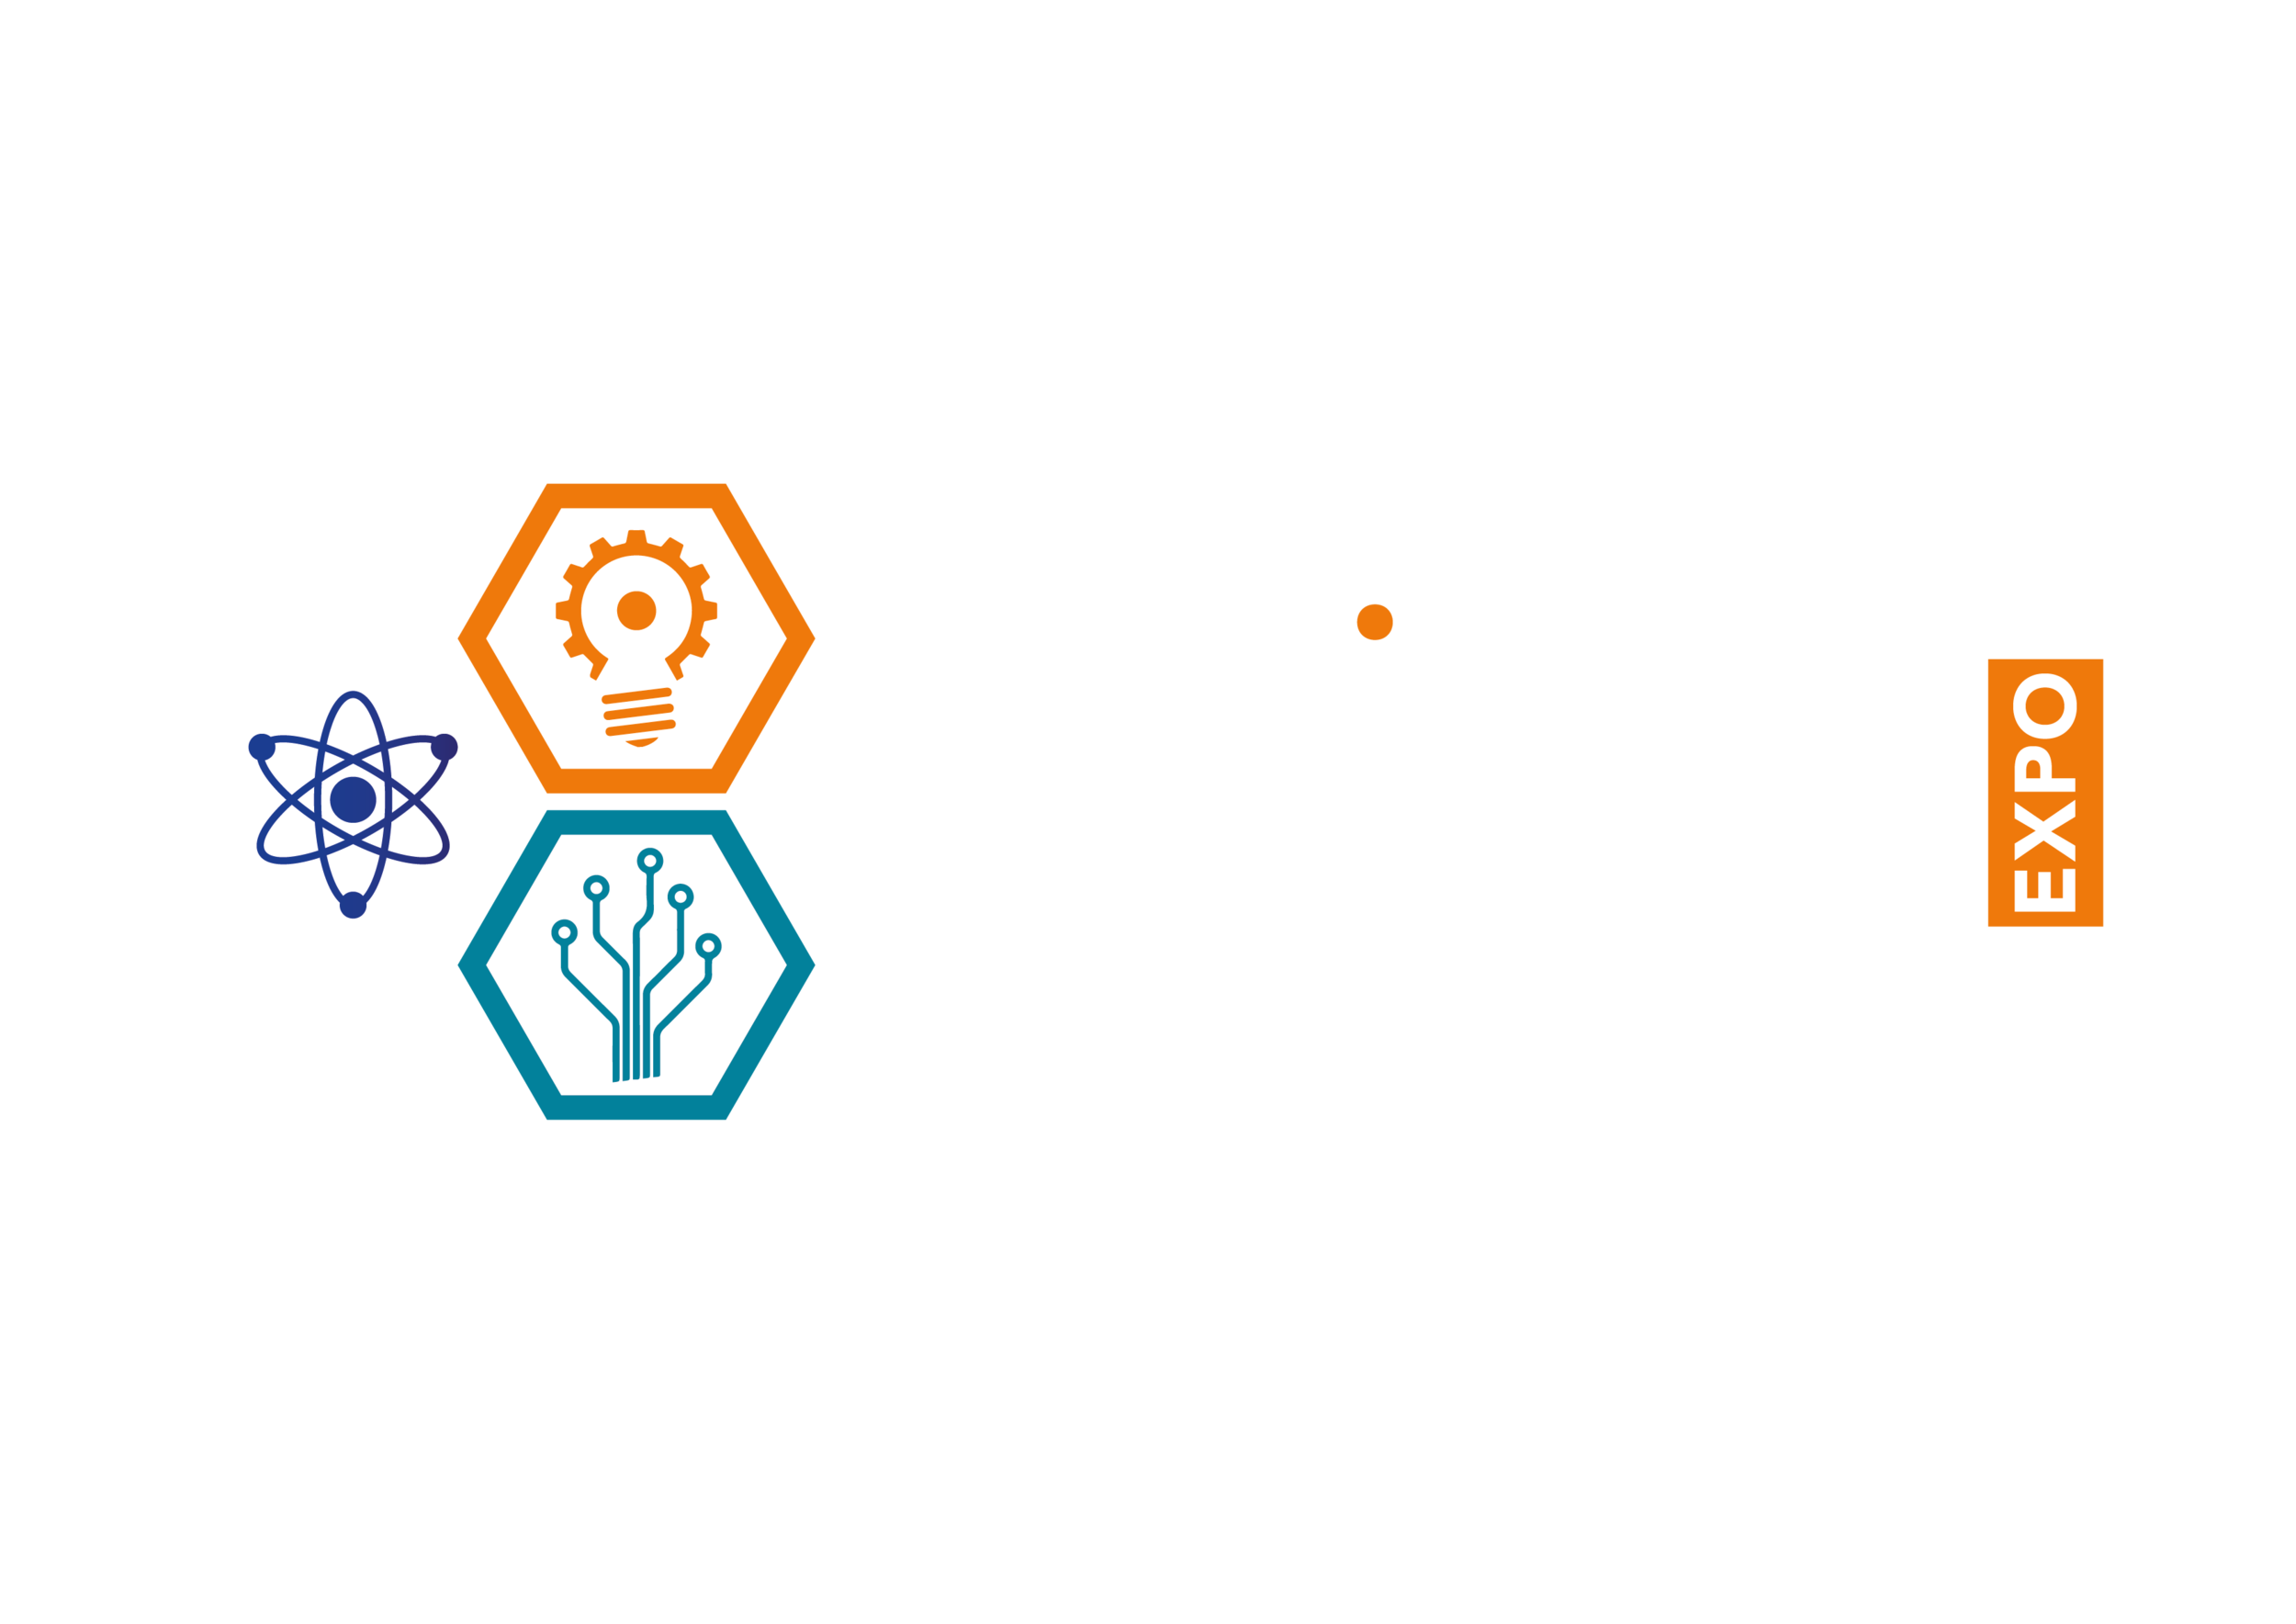 Business Innovation South Expo logo